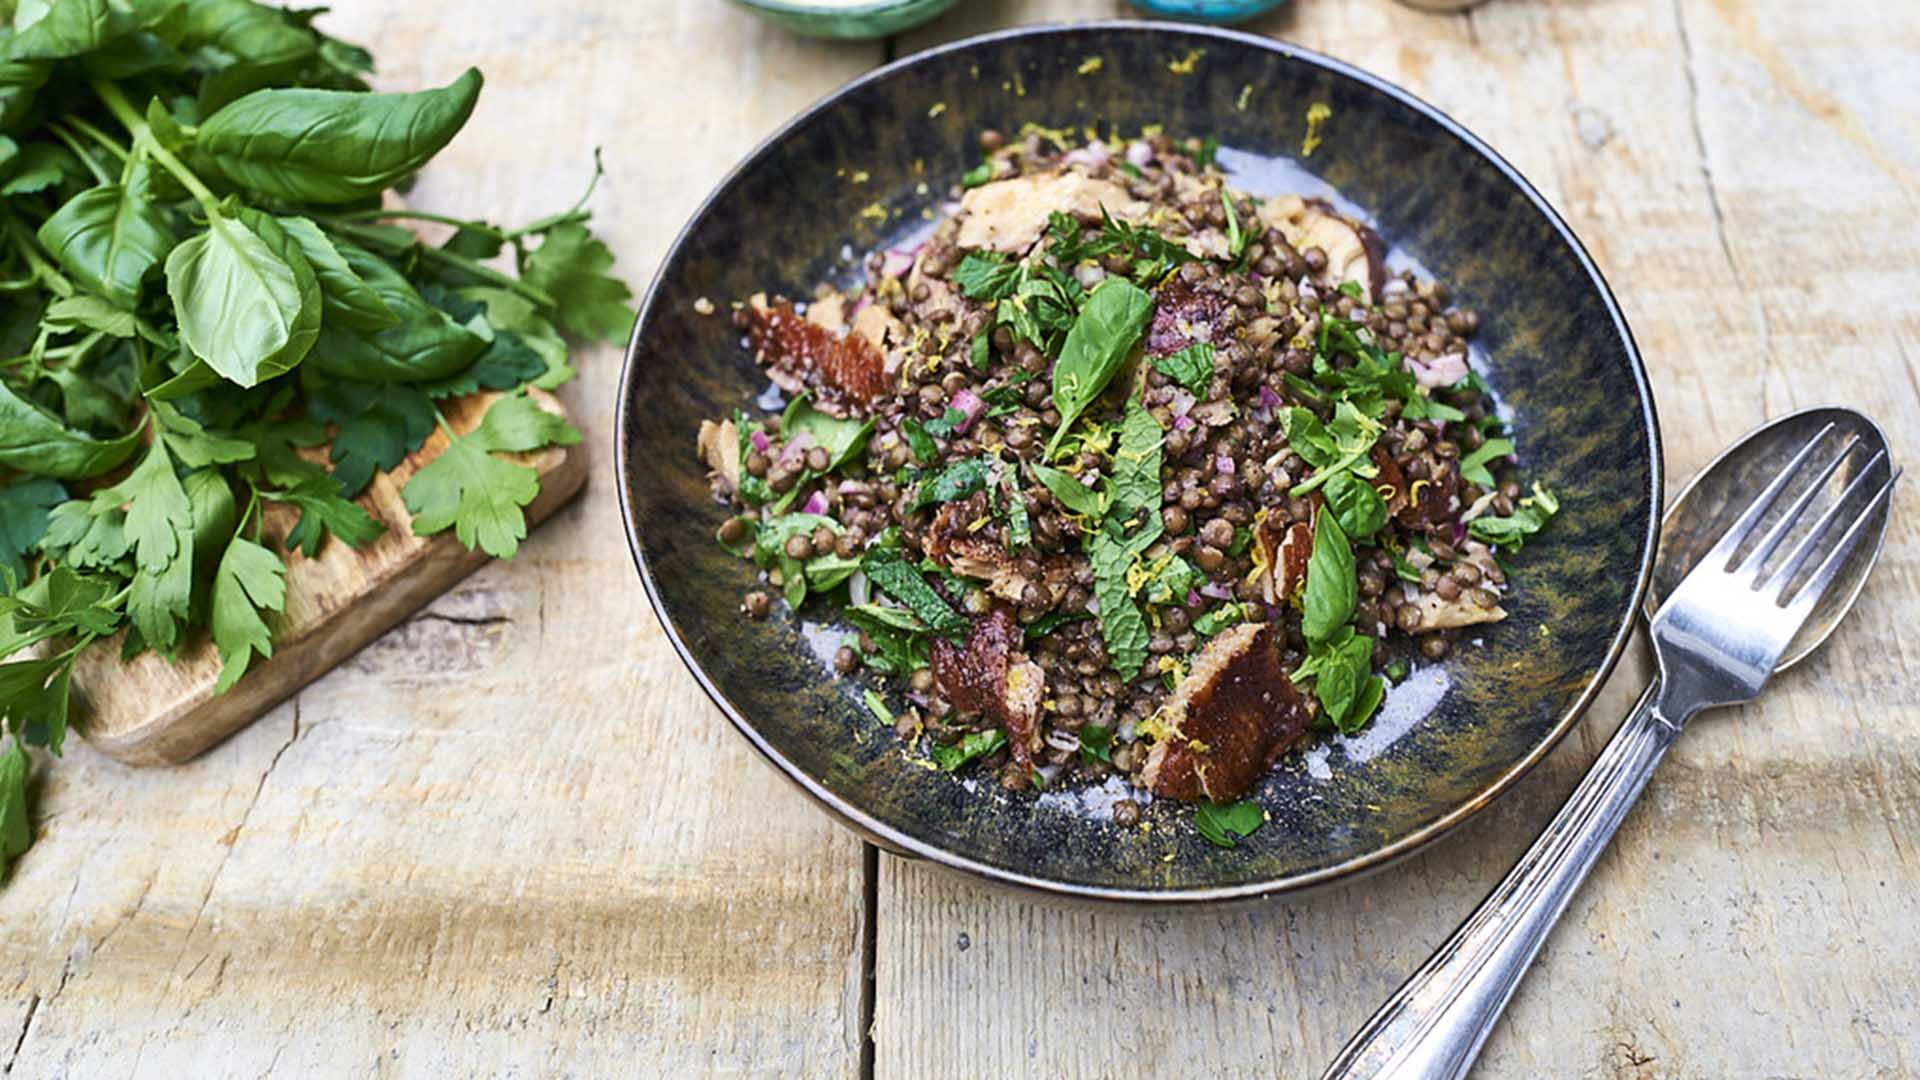 Lentils, herring and leaves in dark bowl on wooden table with fork and spoon on side